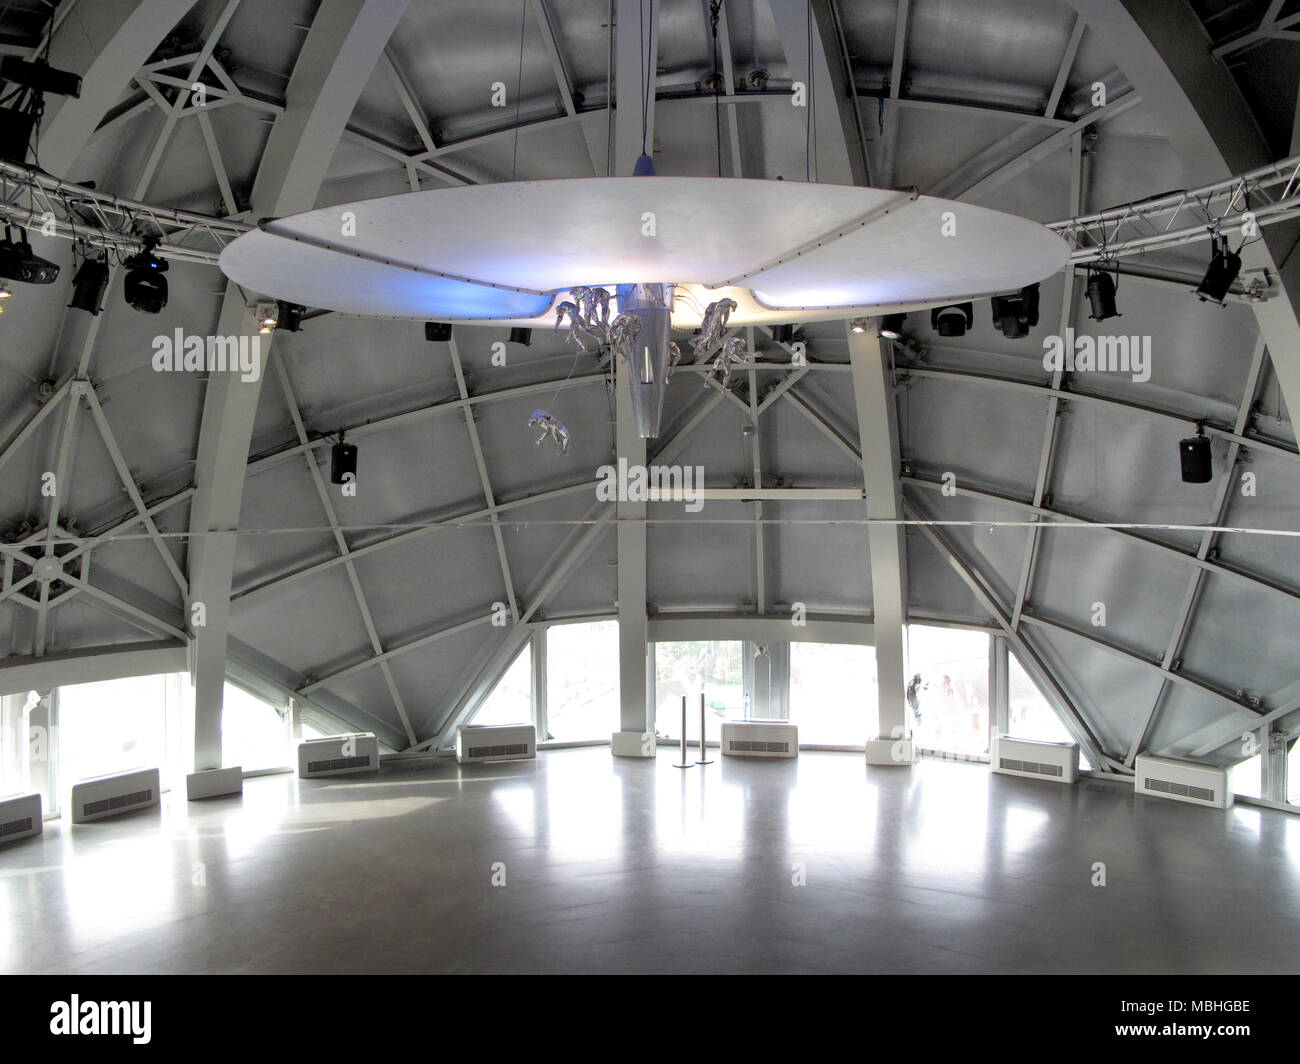 26 January 2018, Belgium, Brussels: The lamp 'Friendly Intrusion from Outer Space' by Ingo Maurer hangs inside one of the spheres that make up the 102m tall Atomium building. The Atomium was created for the World Exhibtion of 1958 and celebrates its 60th anniversary on 17 April 2018. Photo: Elena Metz/dpa - Stock Image